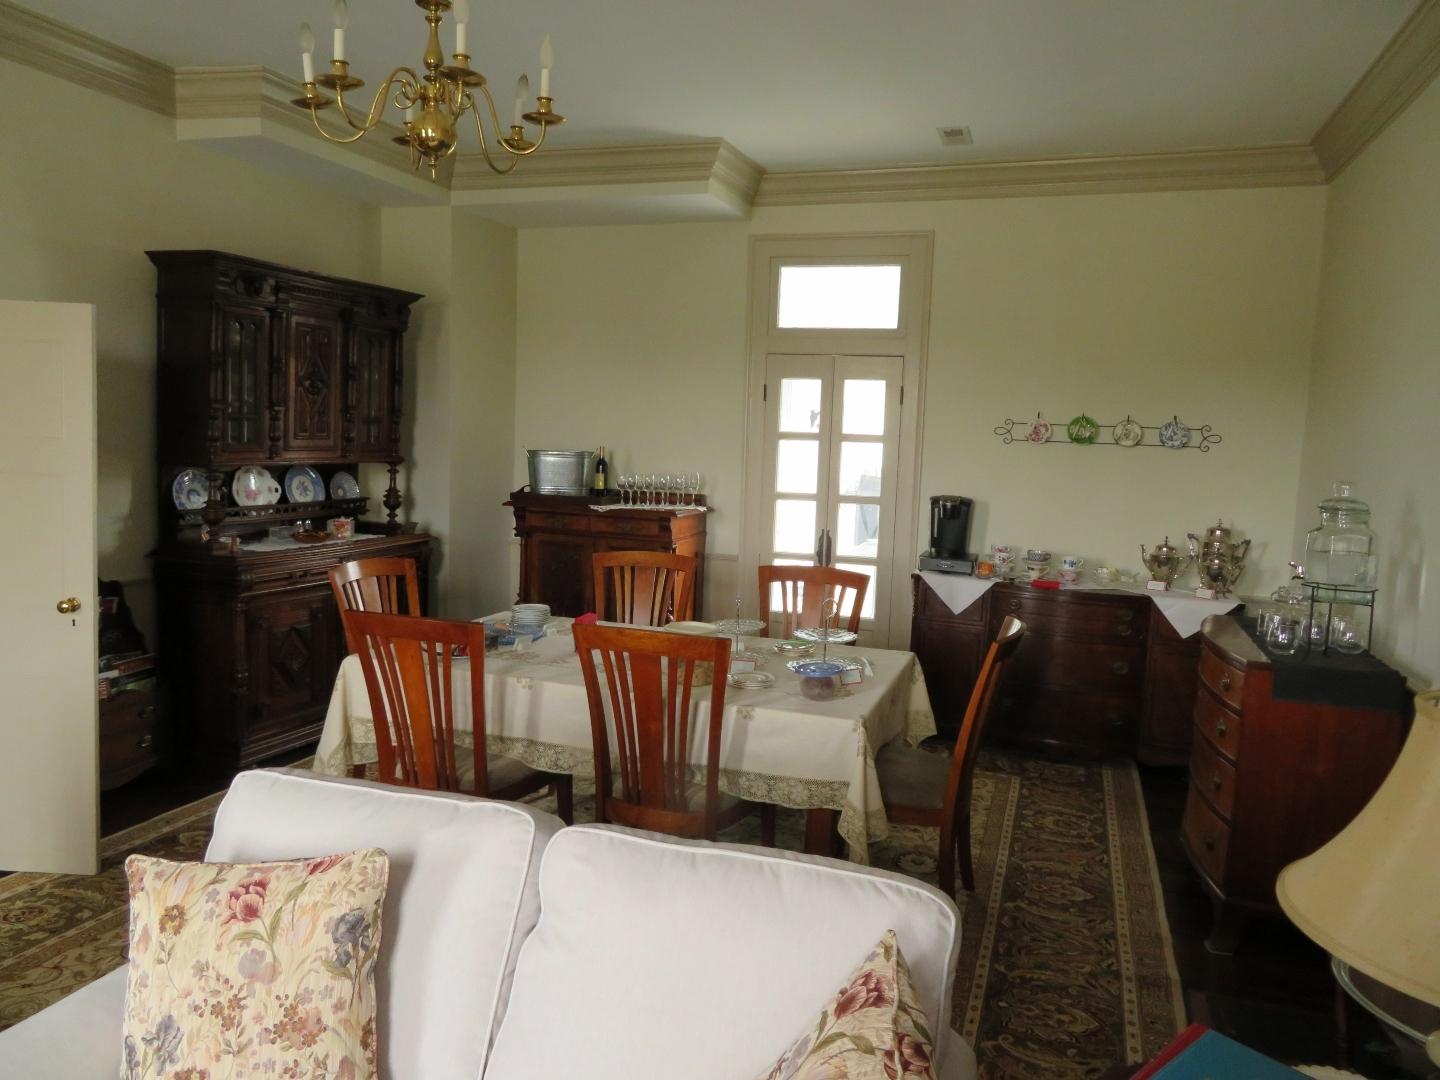 A living room filled with furniture and a bed at Cider House Bed and Breakfast.